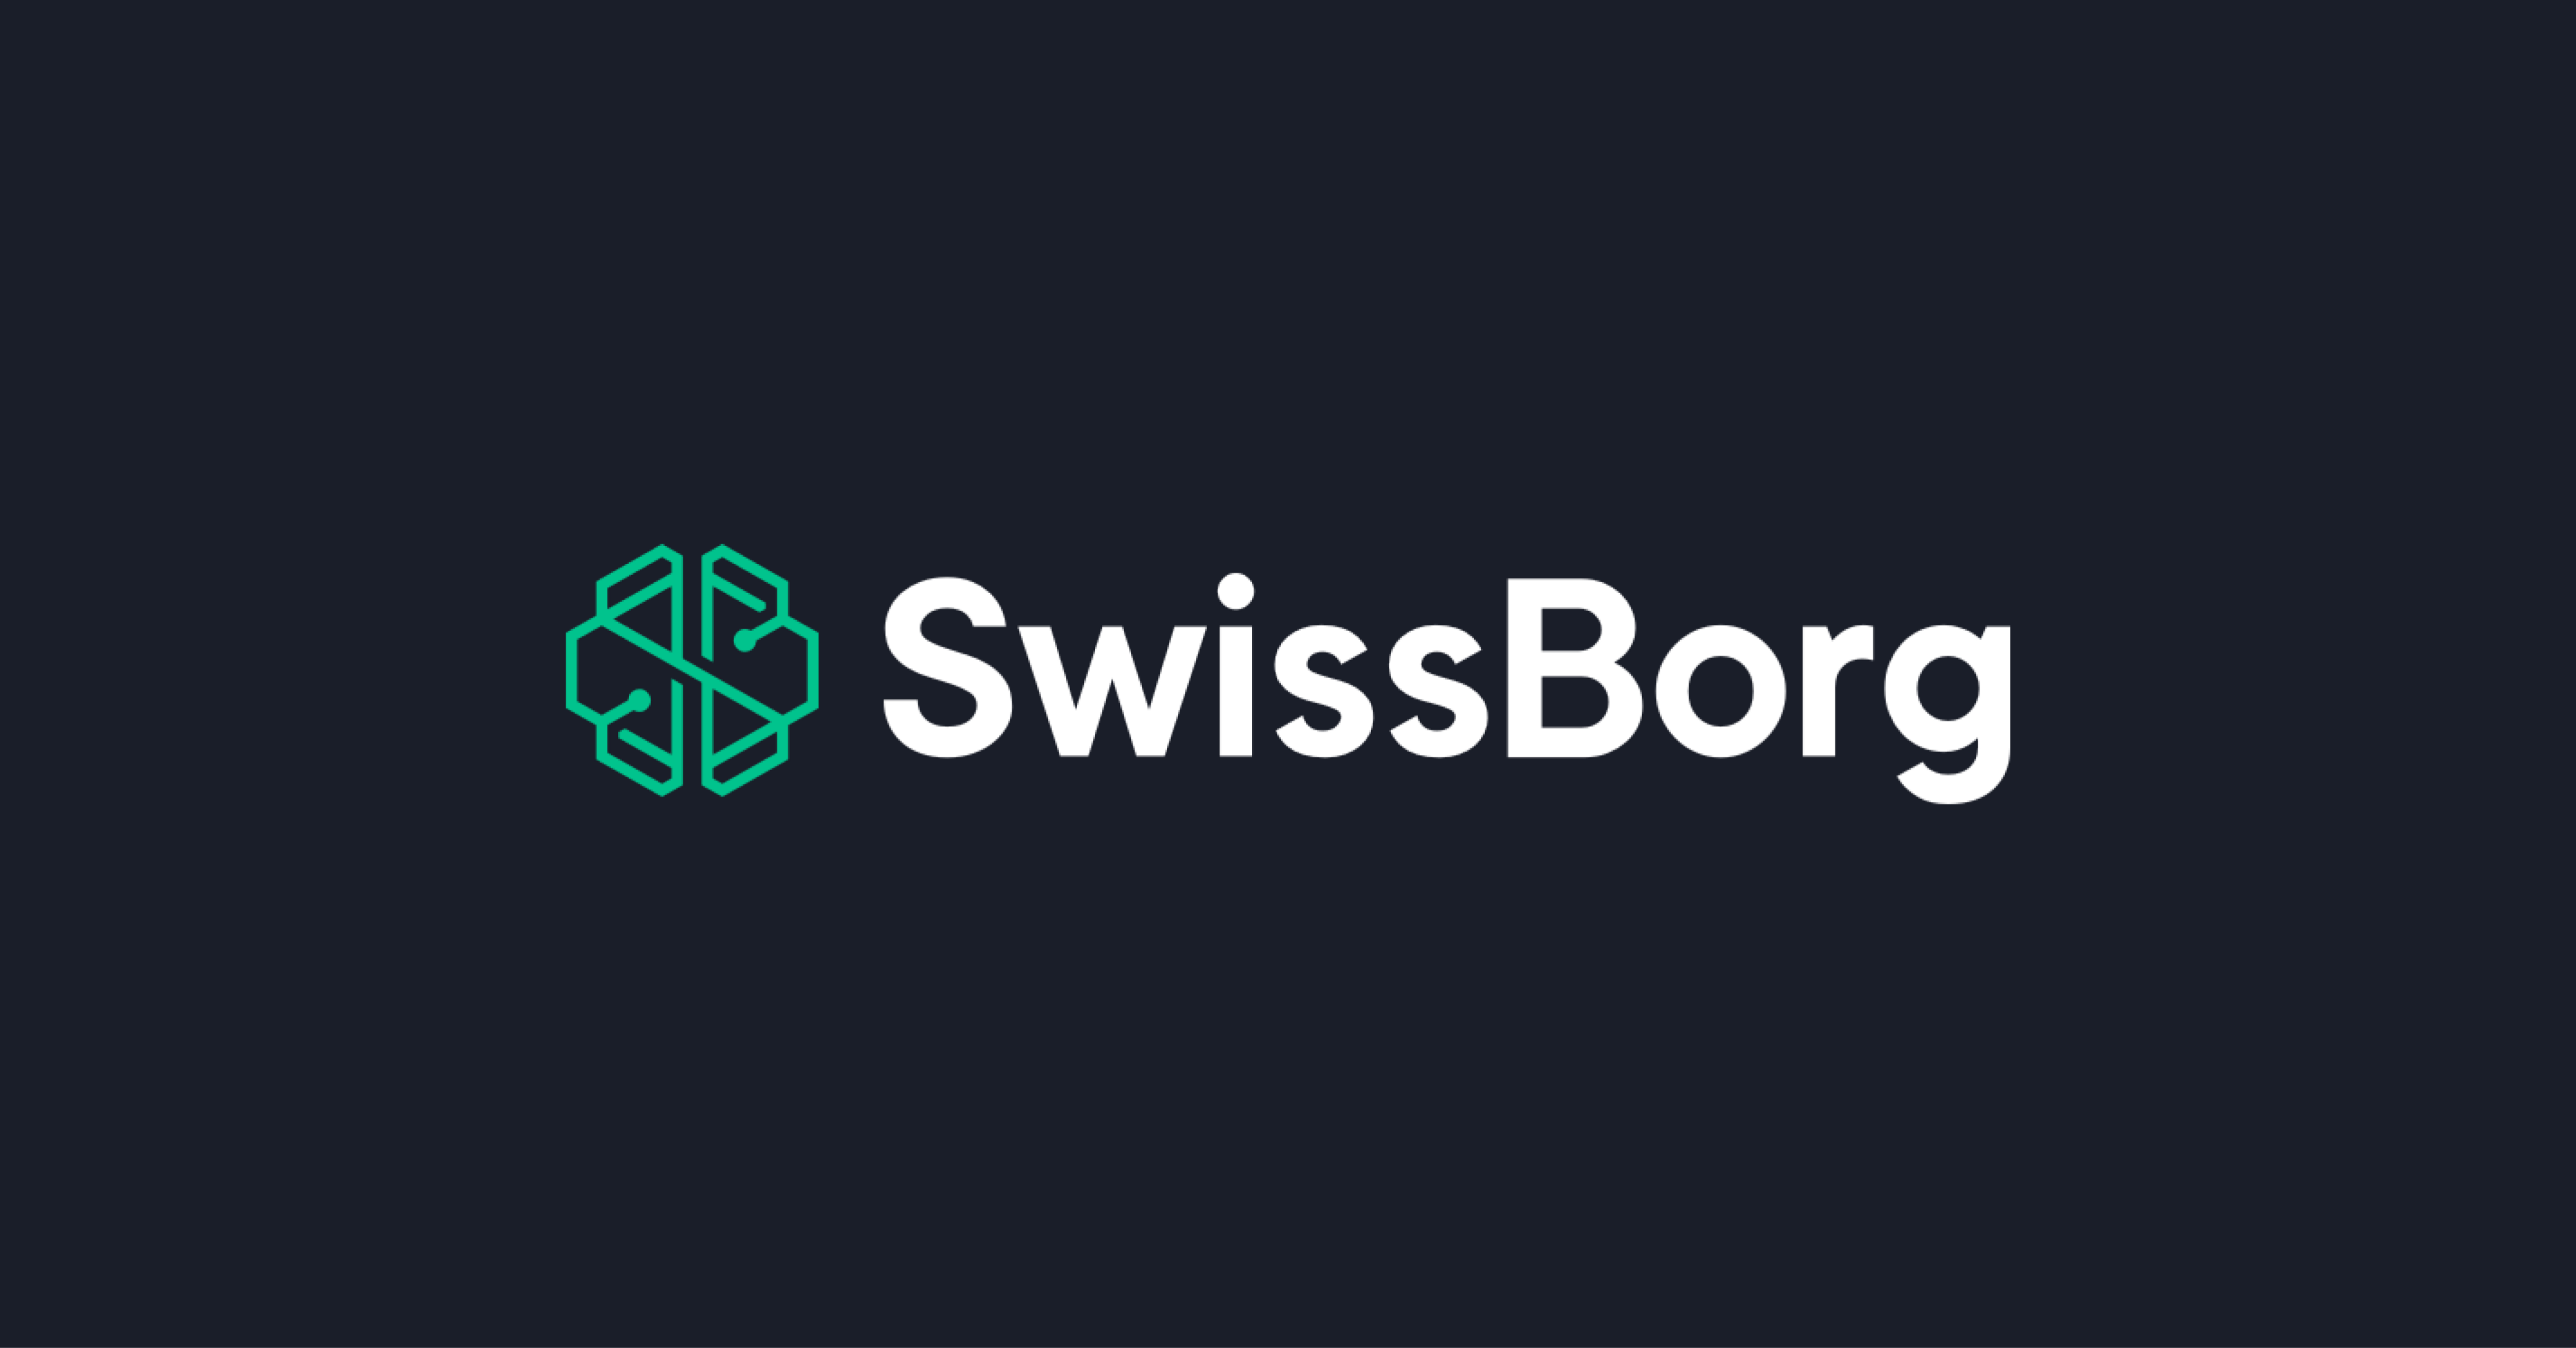 SwissBorg Manage your Crypto Investment Bytcion Crypto Search Engine and Concierge Changelly Cryptocurrency Exchange Platform Trezor Ledger Model T Tokens Net Platform Binance Crypto Currency Exchange Local Bitcoins service trading Buybit BTC Exchange Trezor One Metallic Bitcoin Litecoin Dash XRP and more. Explore the thousands of crypto Trezor Model T currencies in our crypto database ETH ETHEREUM BYTCION COIN Crypto currency personal service